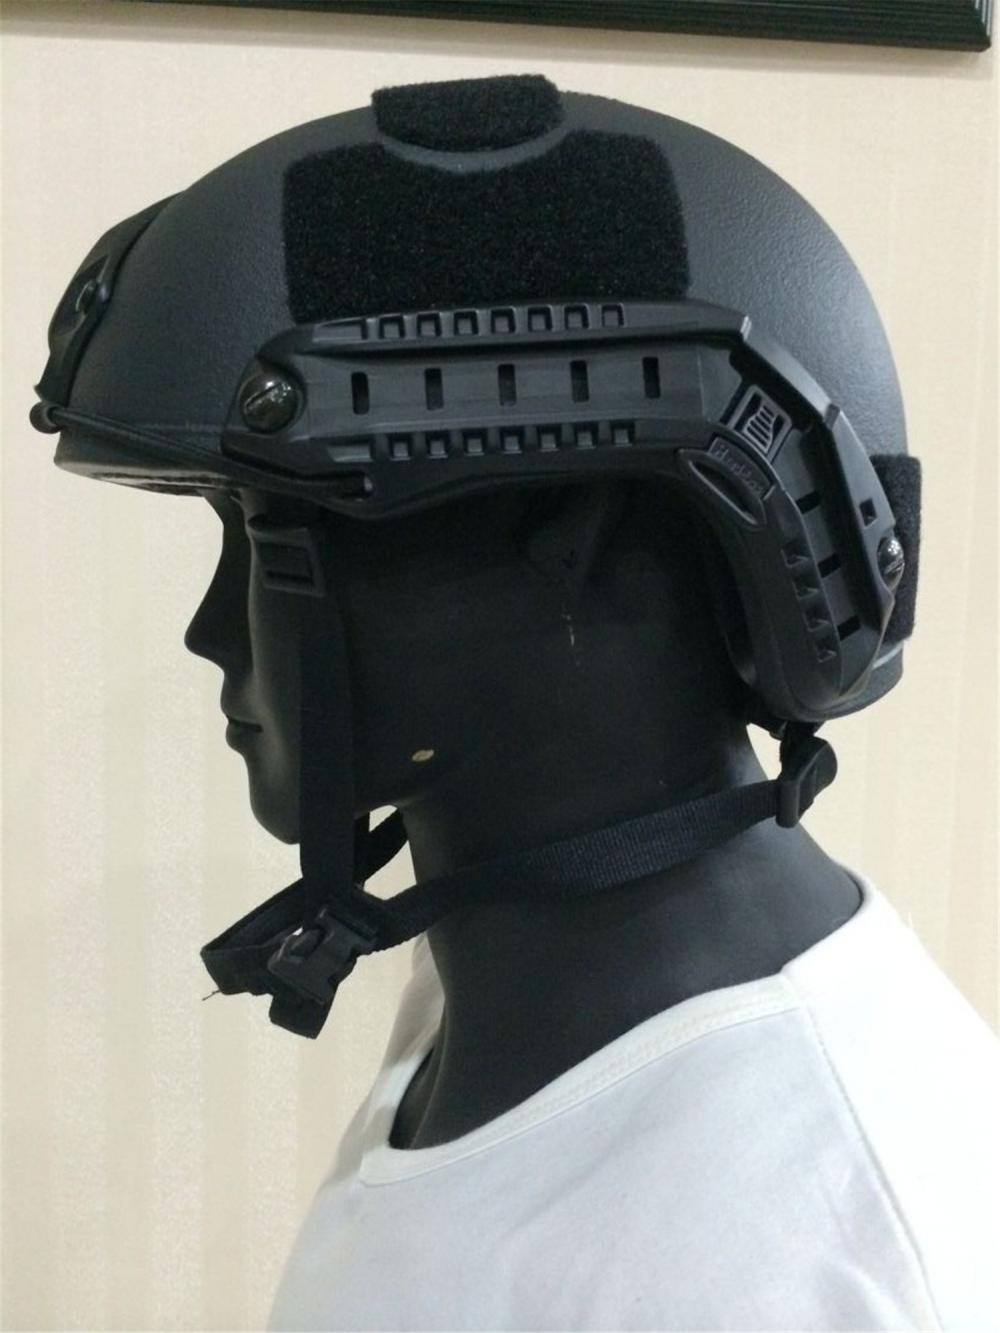 Casco FAST Military Bullet Proof